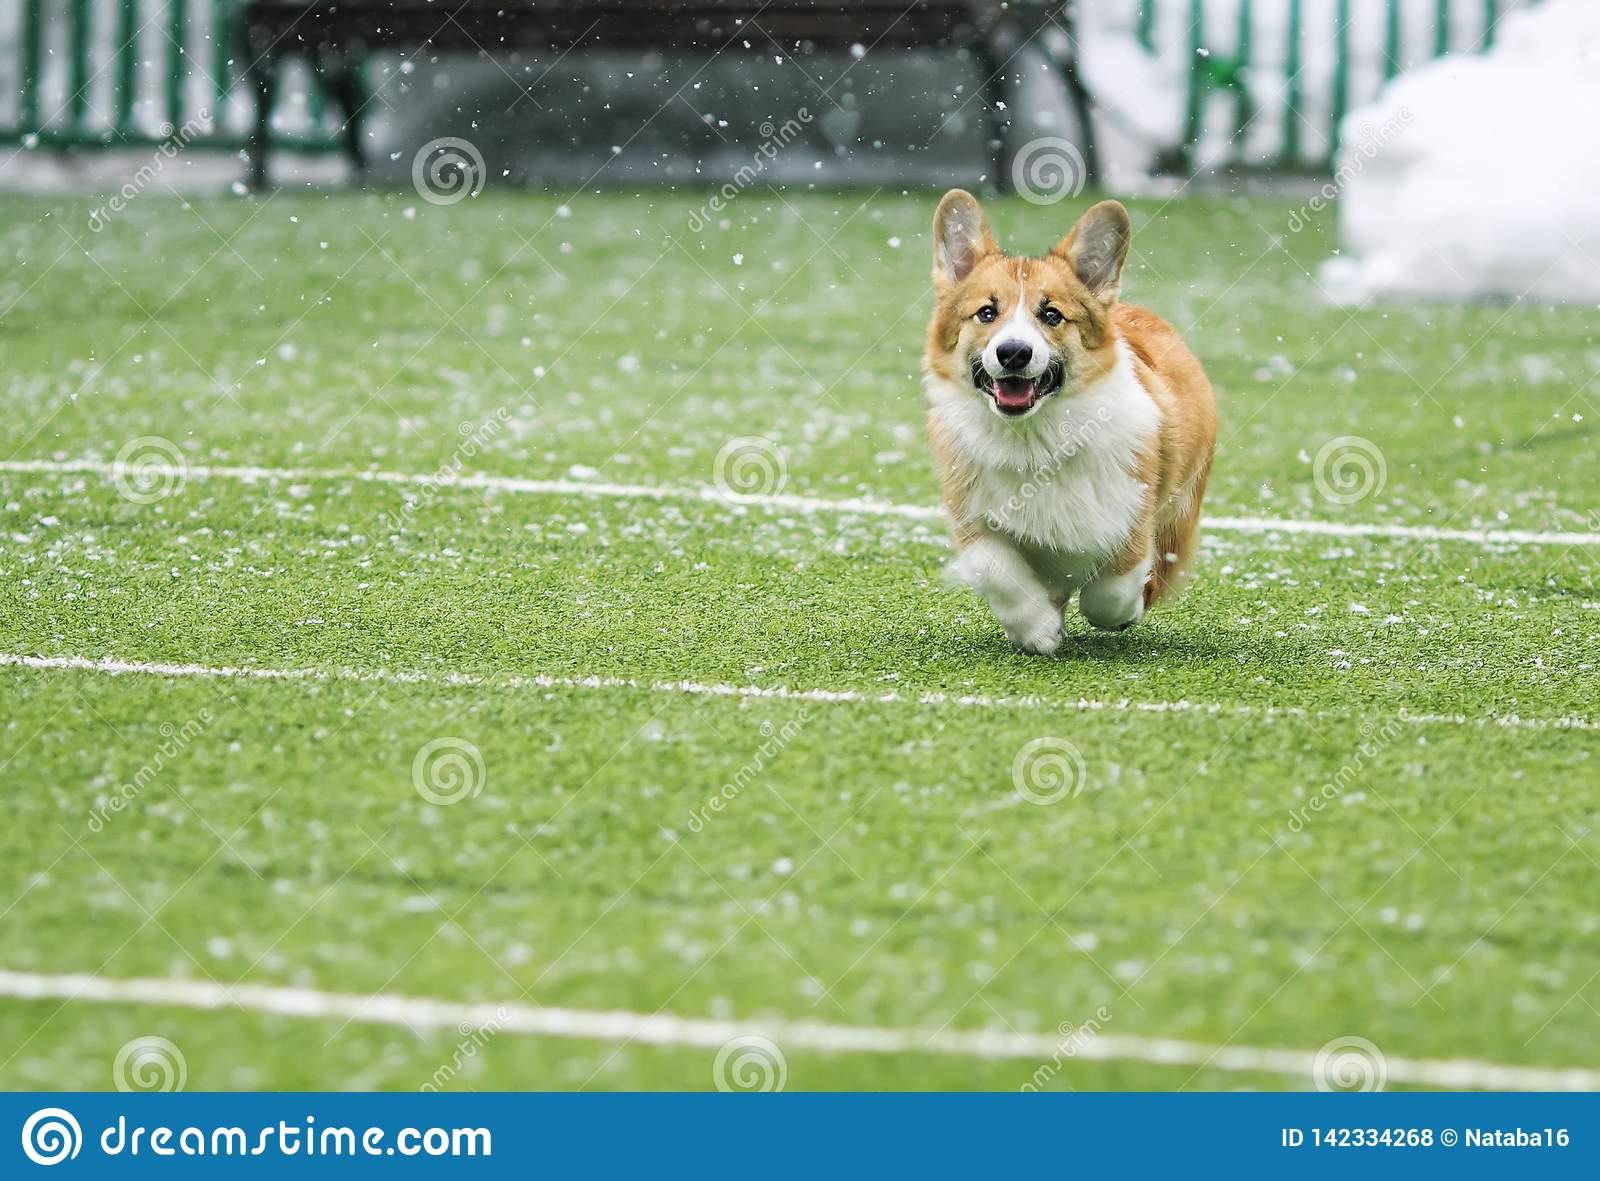 happy little puppy red dog breed Corgi fun running around the green football field on the Playground on the streets in